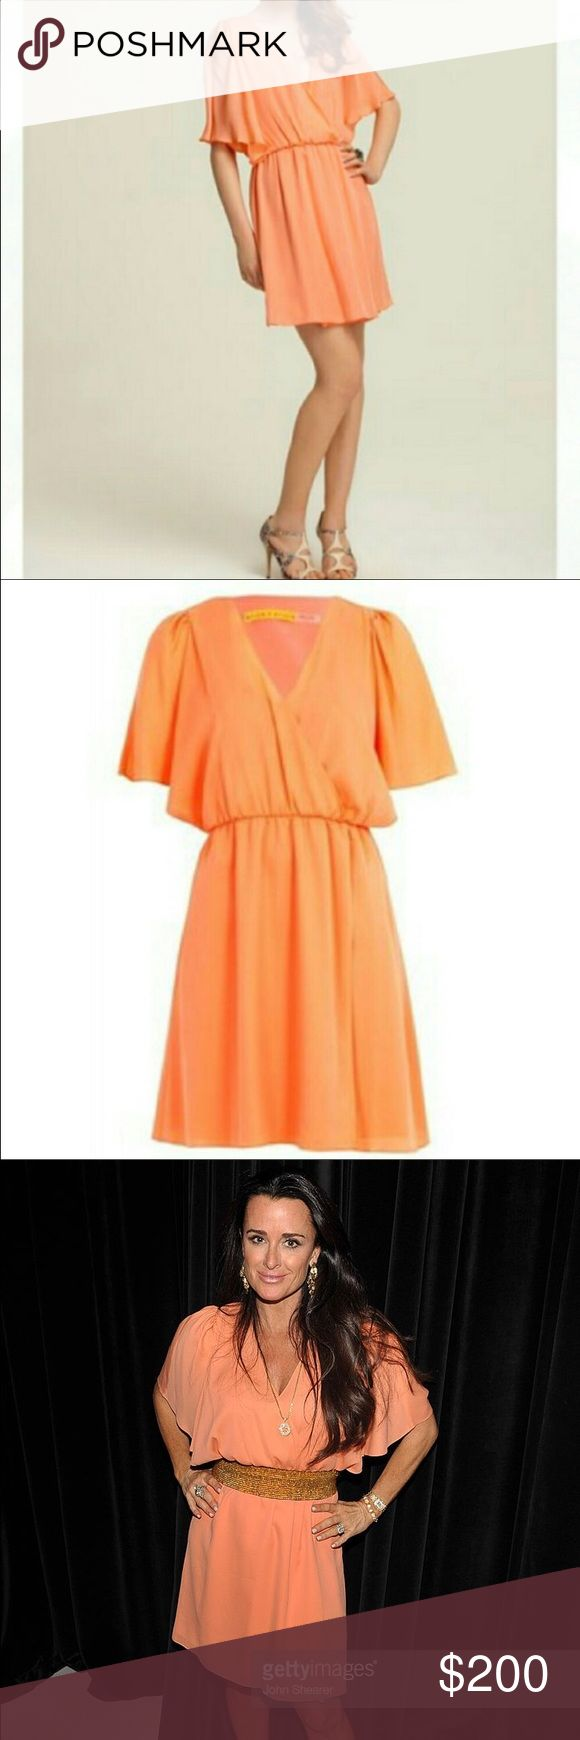 Gorgeous Alice & Olivia Peach Silk Dolman  Beautiful dress with a flattering dolman style top. One small pull noted at inner top, not noticeable when worn because of its location - will post close up photo. In EUC otherwise. Thank you for looking !                                                                                                               smoke and pet free home  Alice + Olivia Dresses